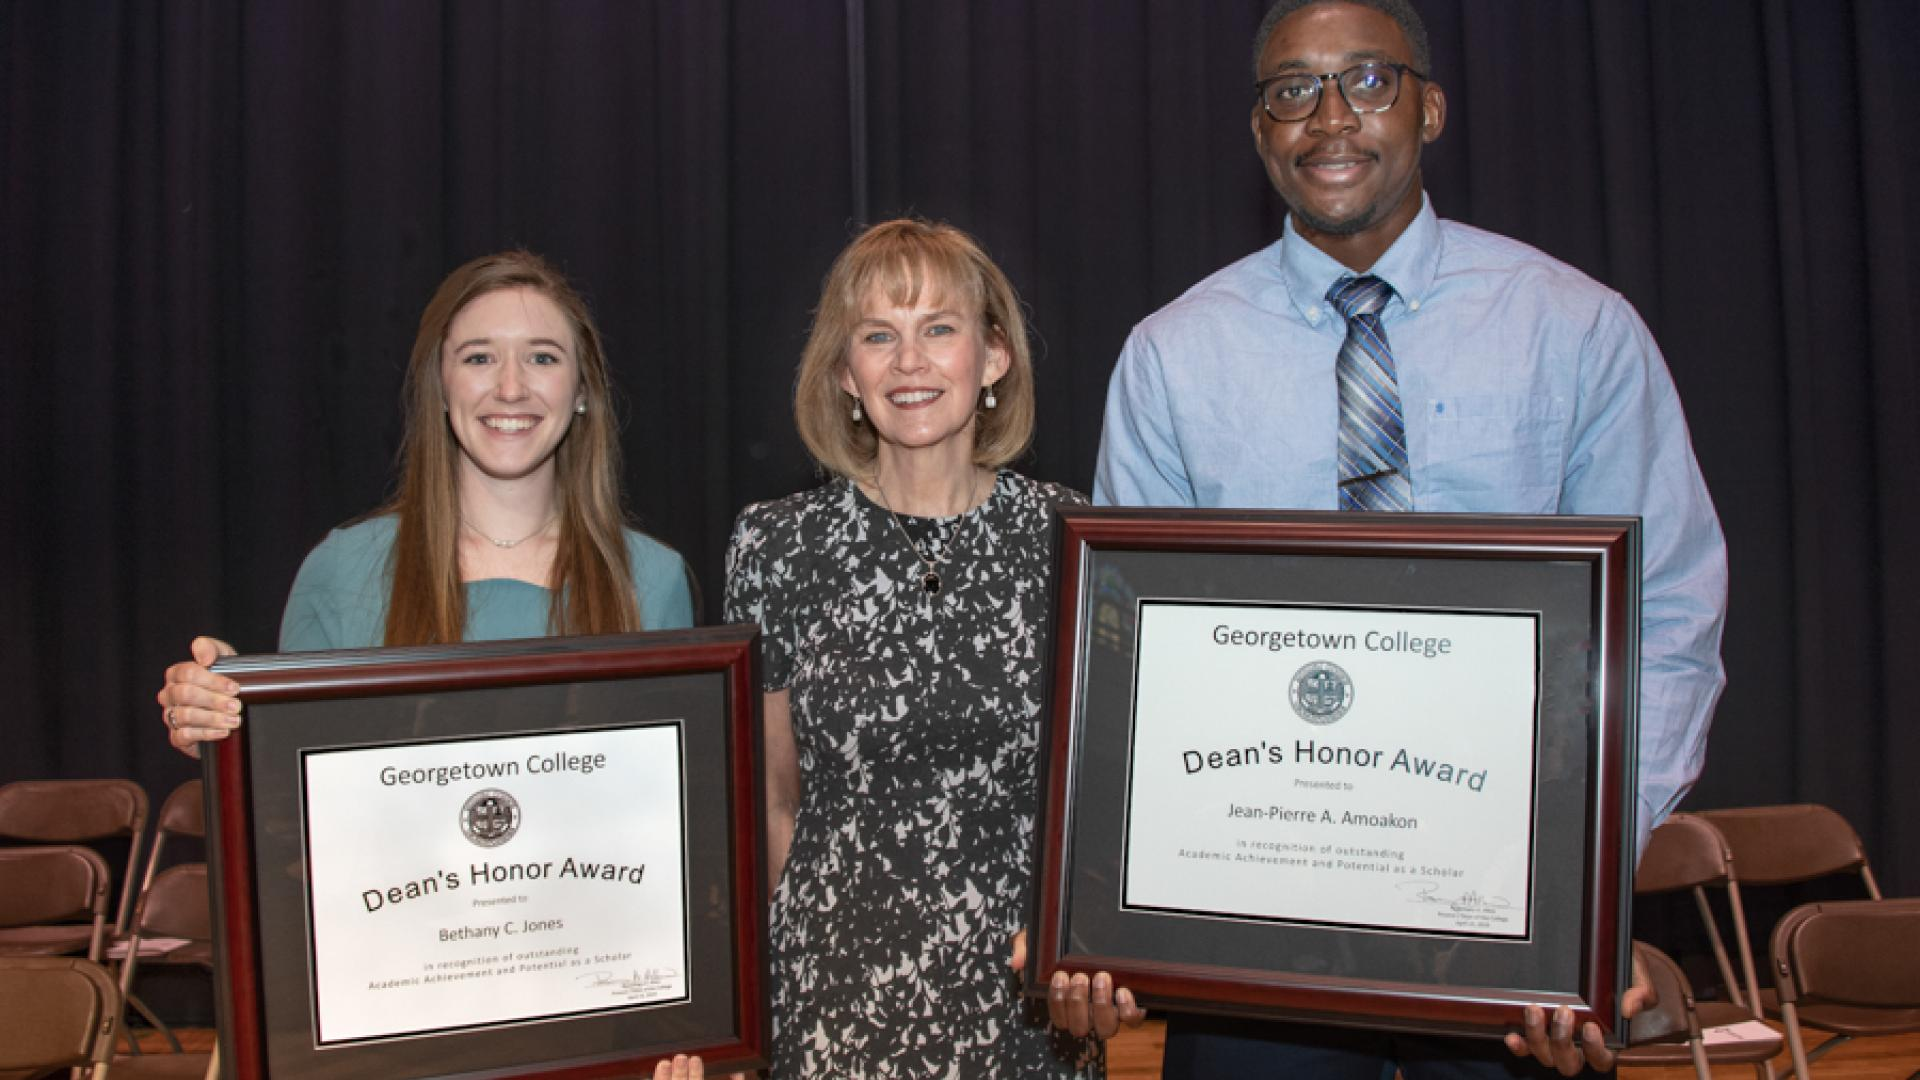 Jean-Pierre Amoakon and Bethany Jones pose with Dean's Award with Dr. Rosemary Allen.